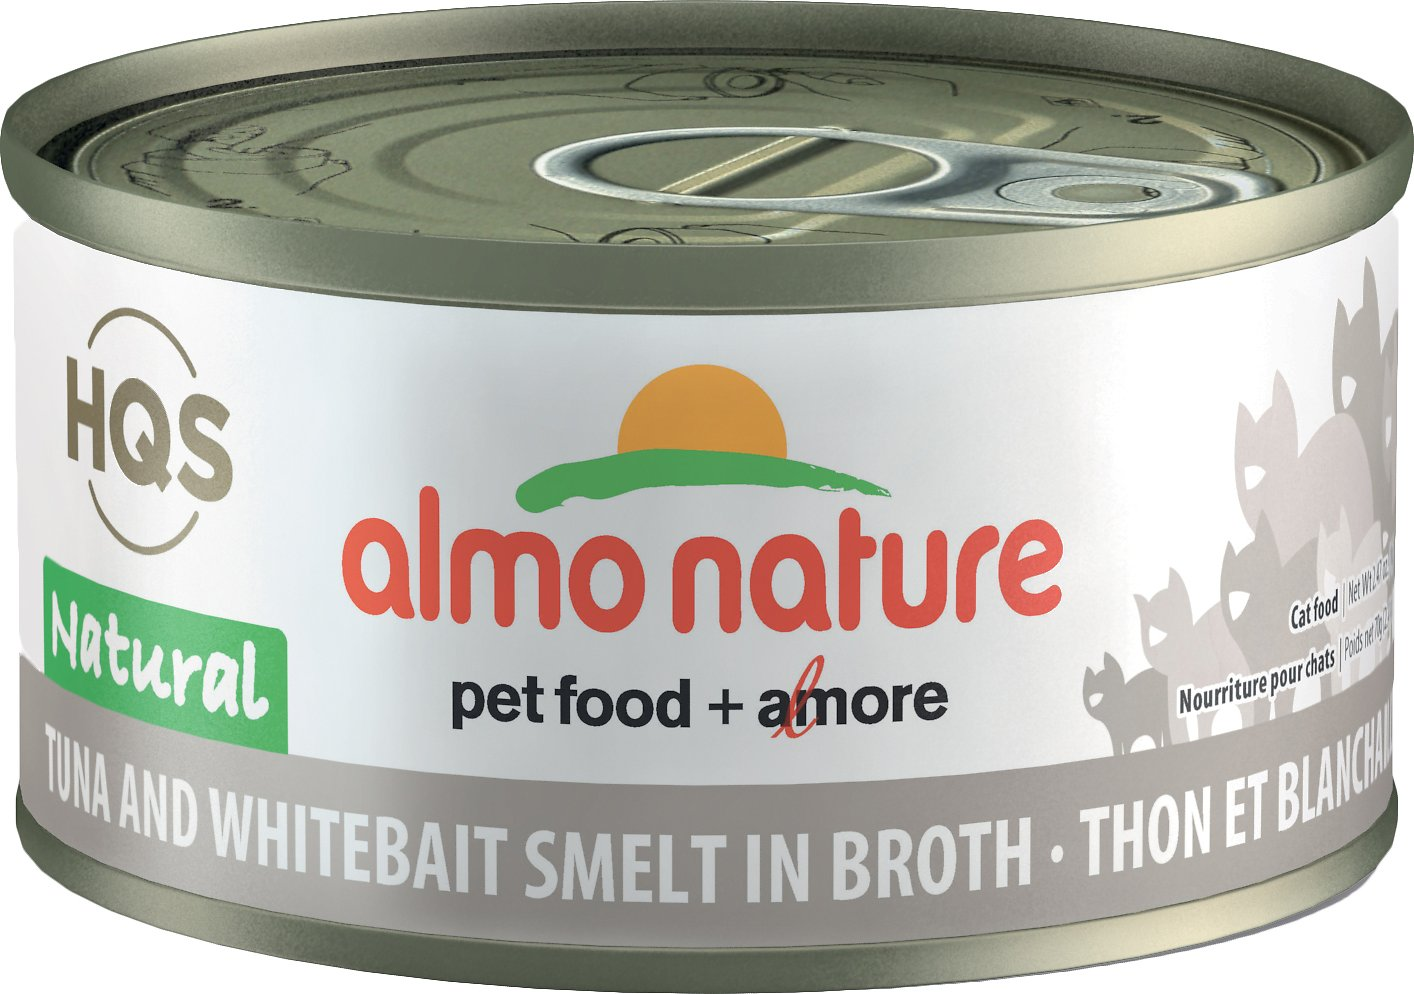 Almo Nature HQS Natural Tuna & Whitebait Smelt in Broth Grain-Free Canned Cat Food, 2.47-oz